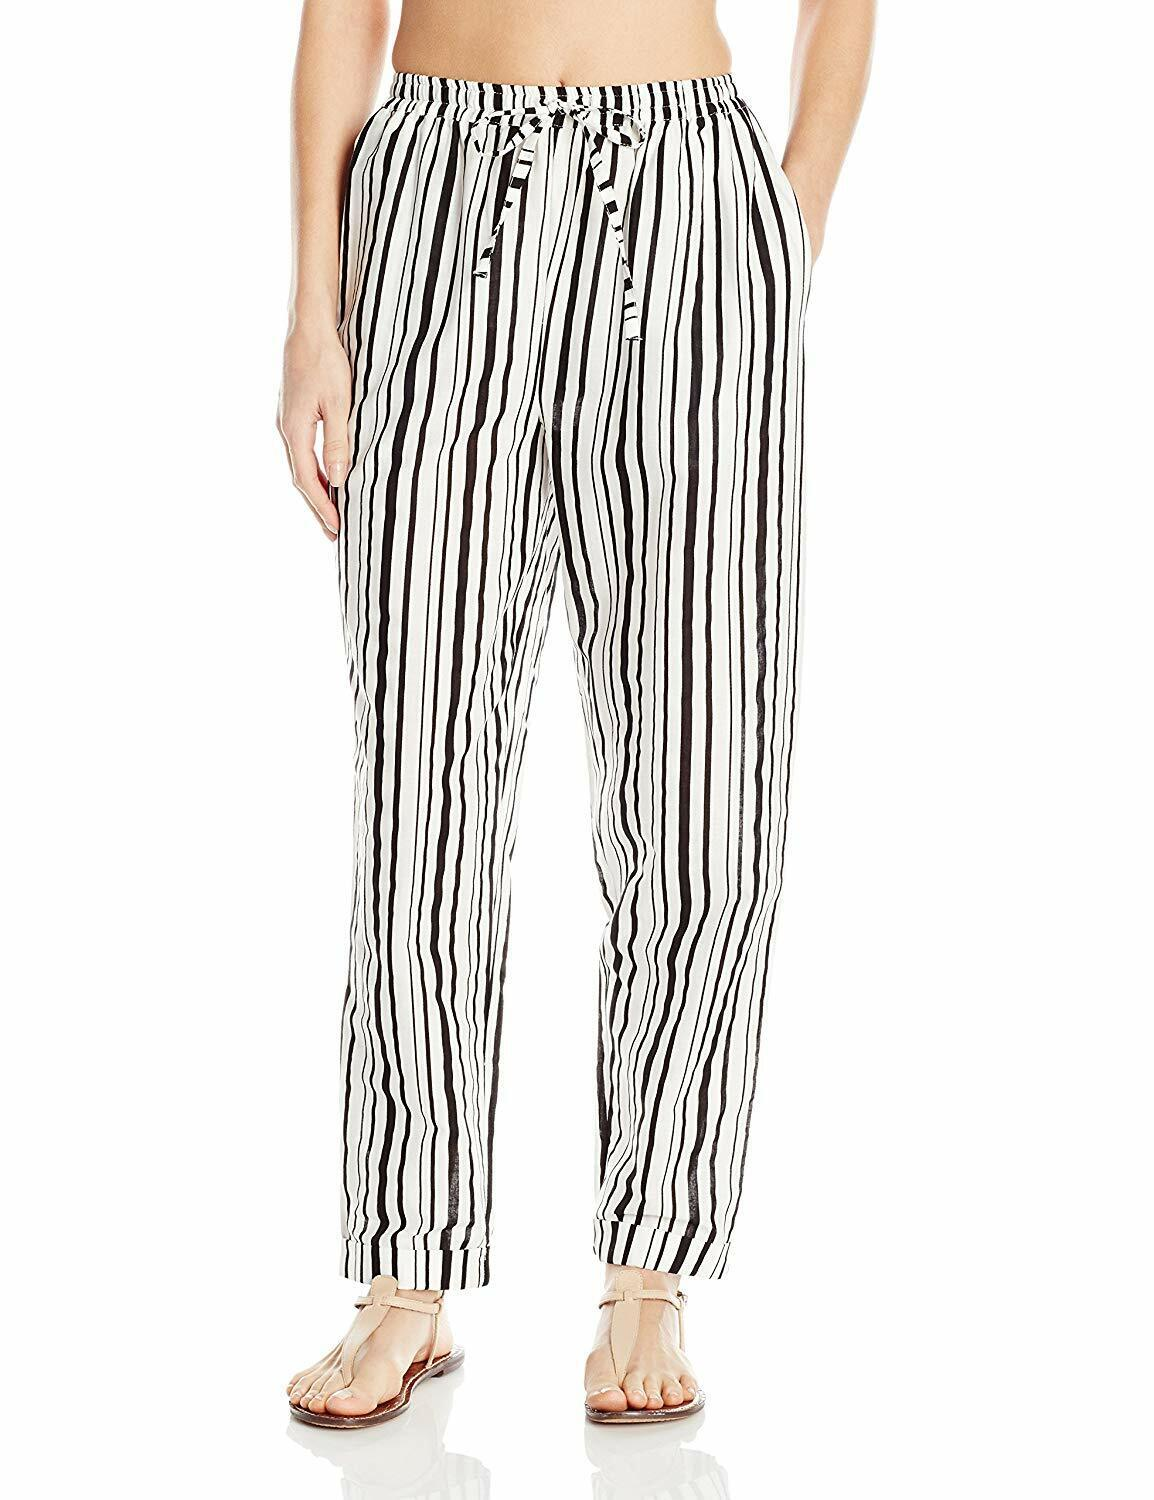 MINKPINK Women's Riviera Getaway Striped Cover Up Pants, M